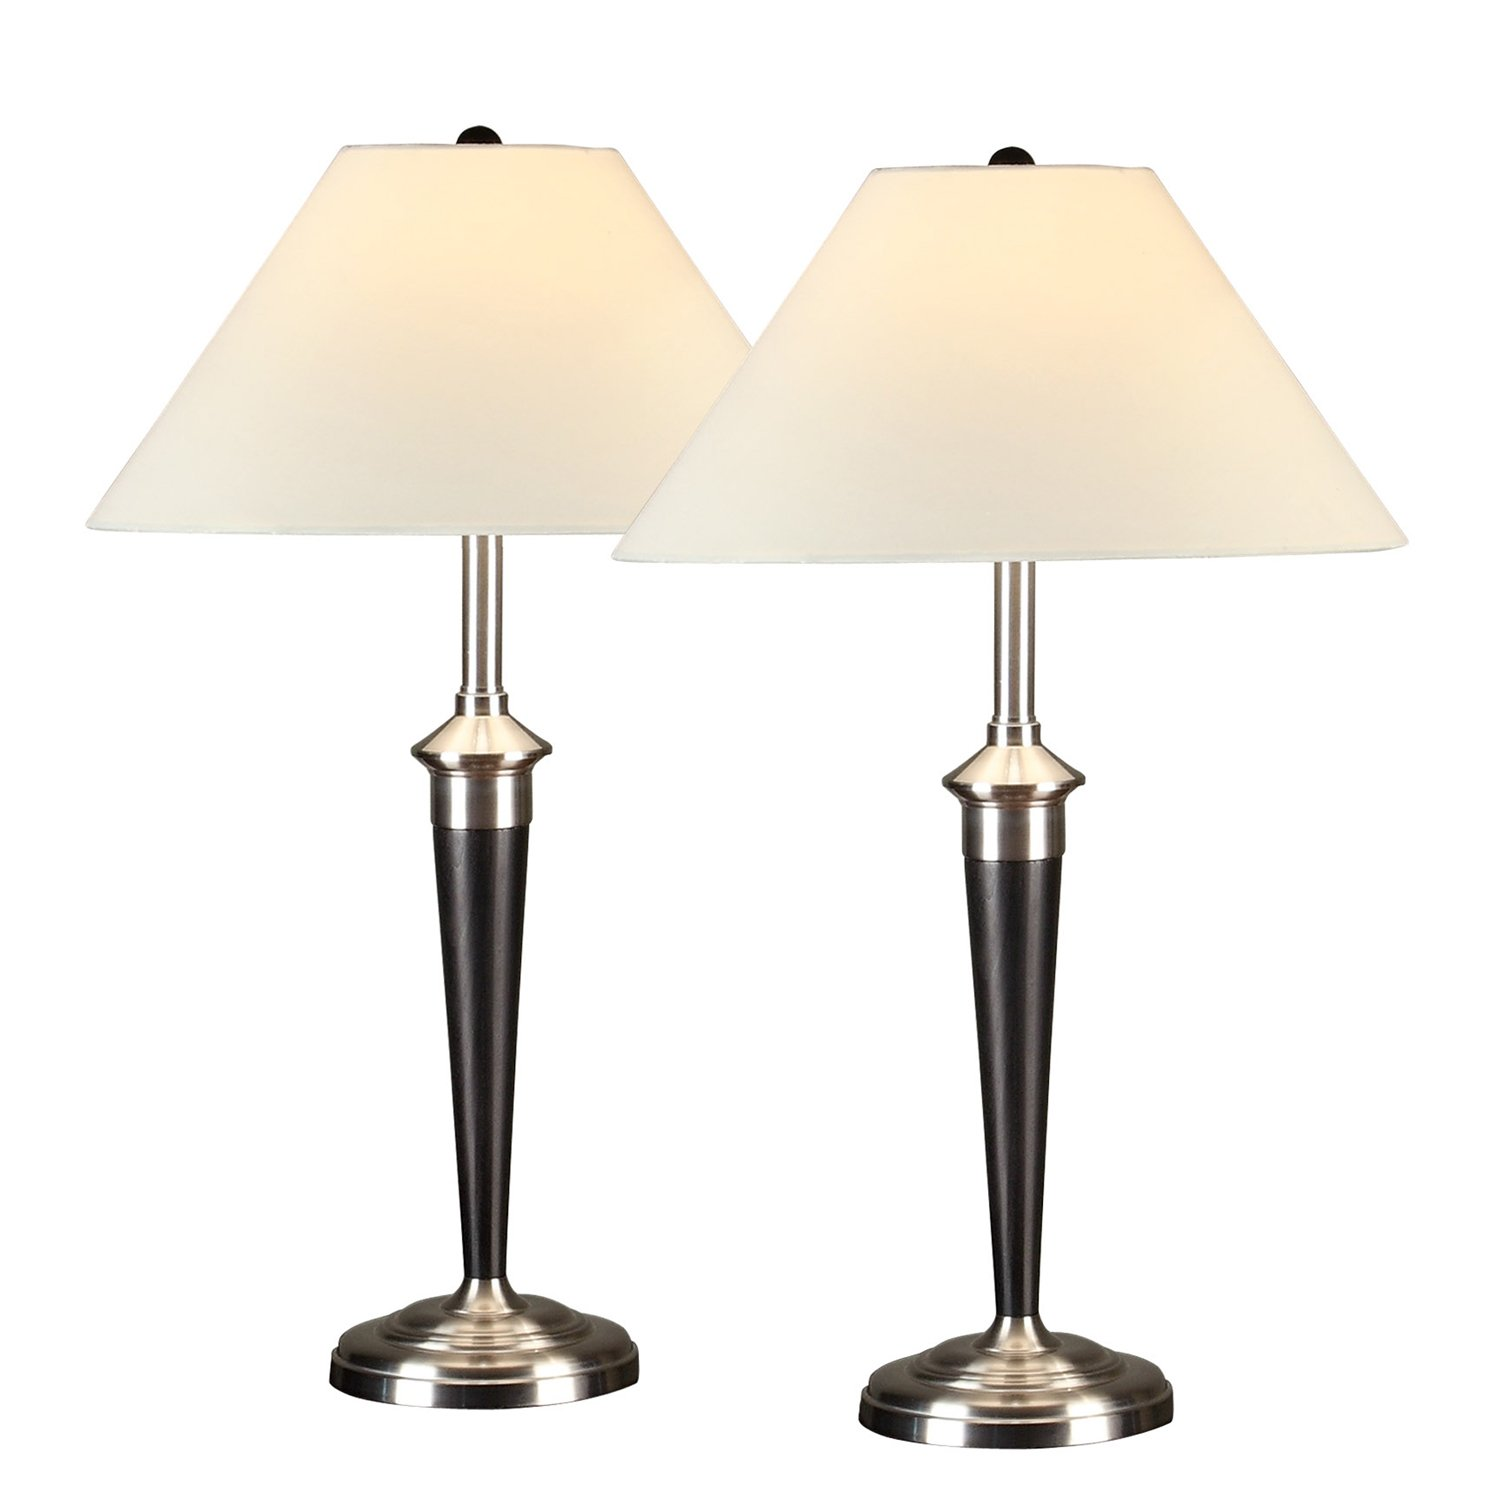 Artiva USA Twin-pack, Classic Cordinates Table Lamps, Quality Brushed Steel and Espresso Finish by Artiva USA